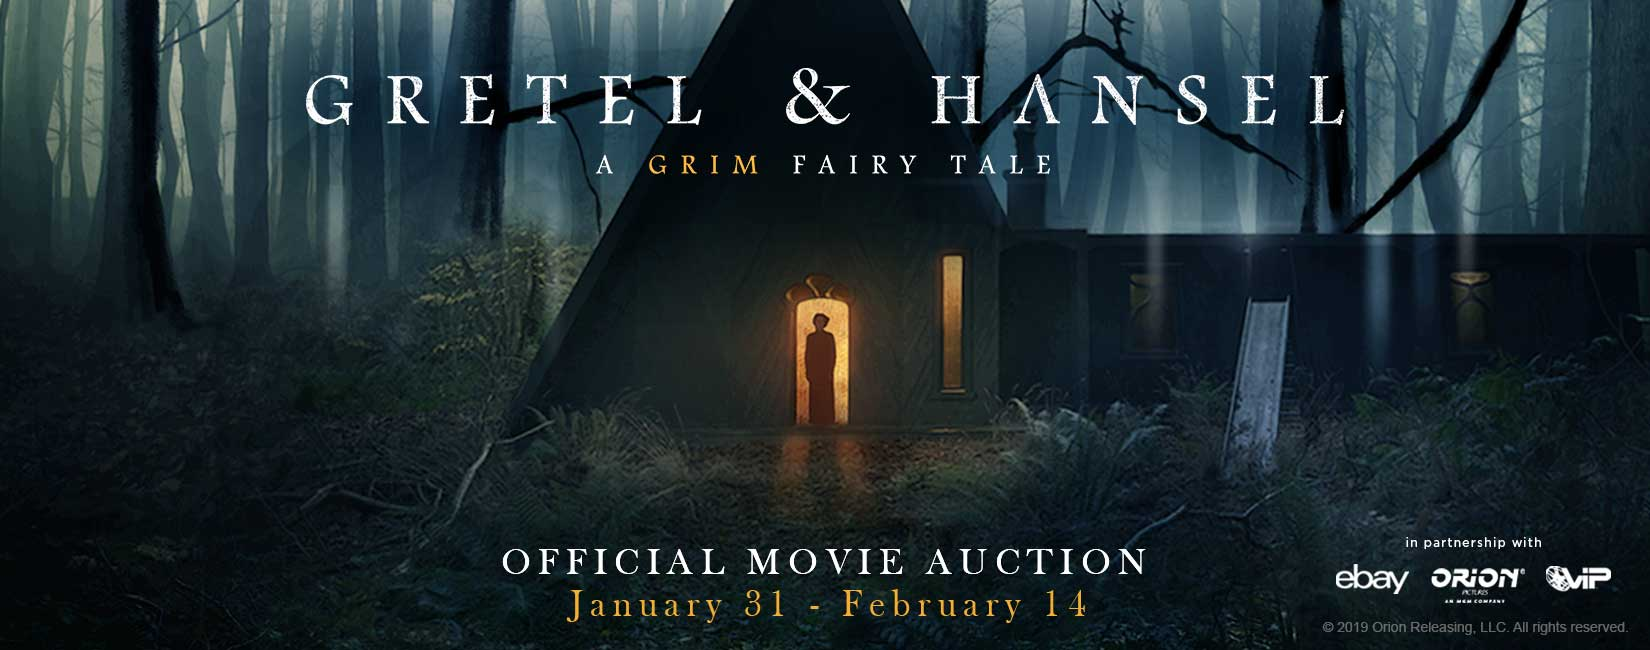 Gretel & Hansel Auction